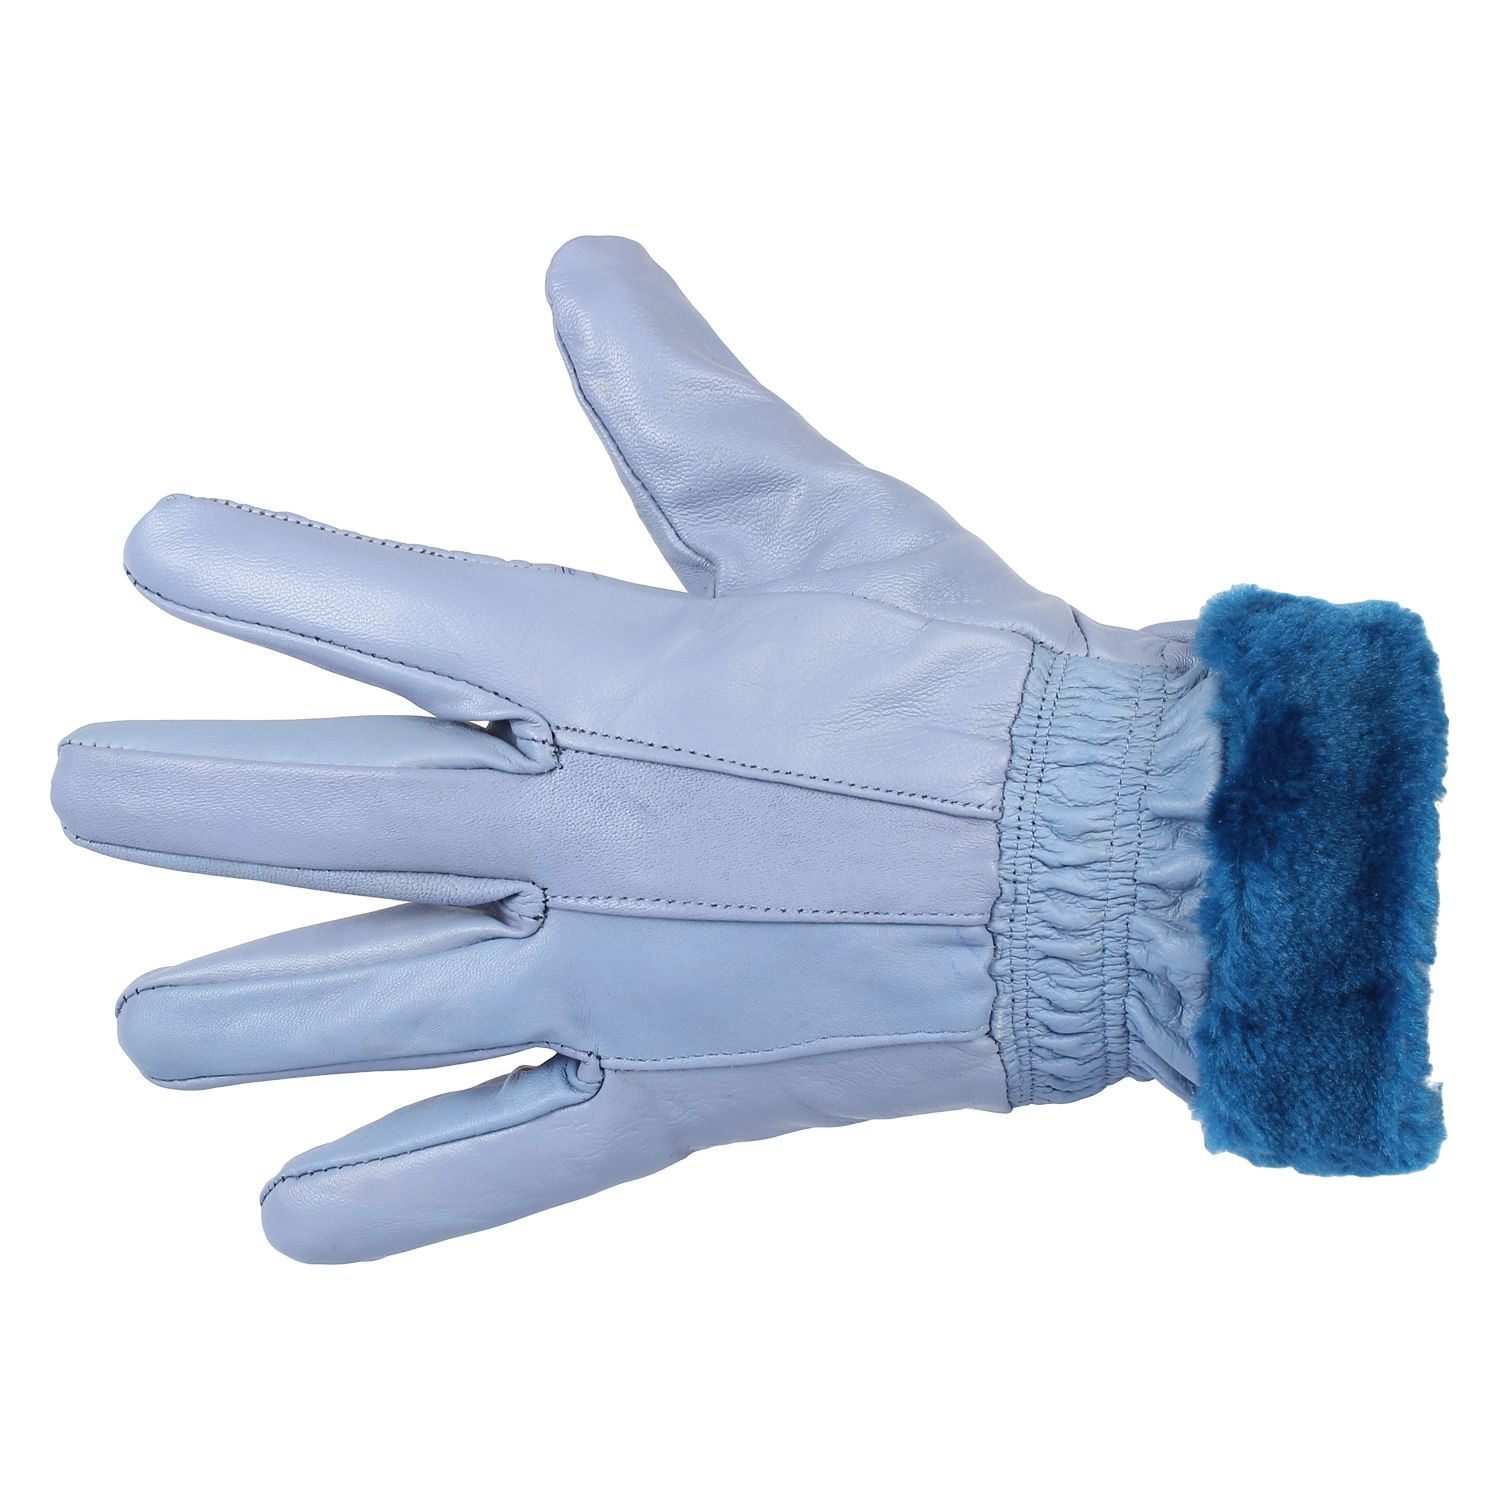 1741016c4 Indian Fashion Sky Blue Leather Gloves For Women: Buy Online at Low Price  in India - Snapdeal